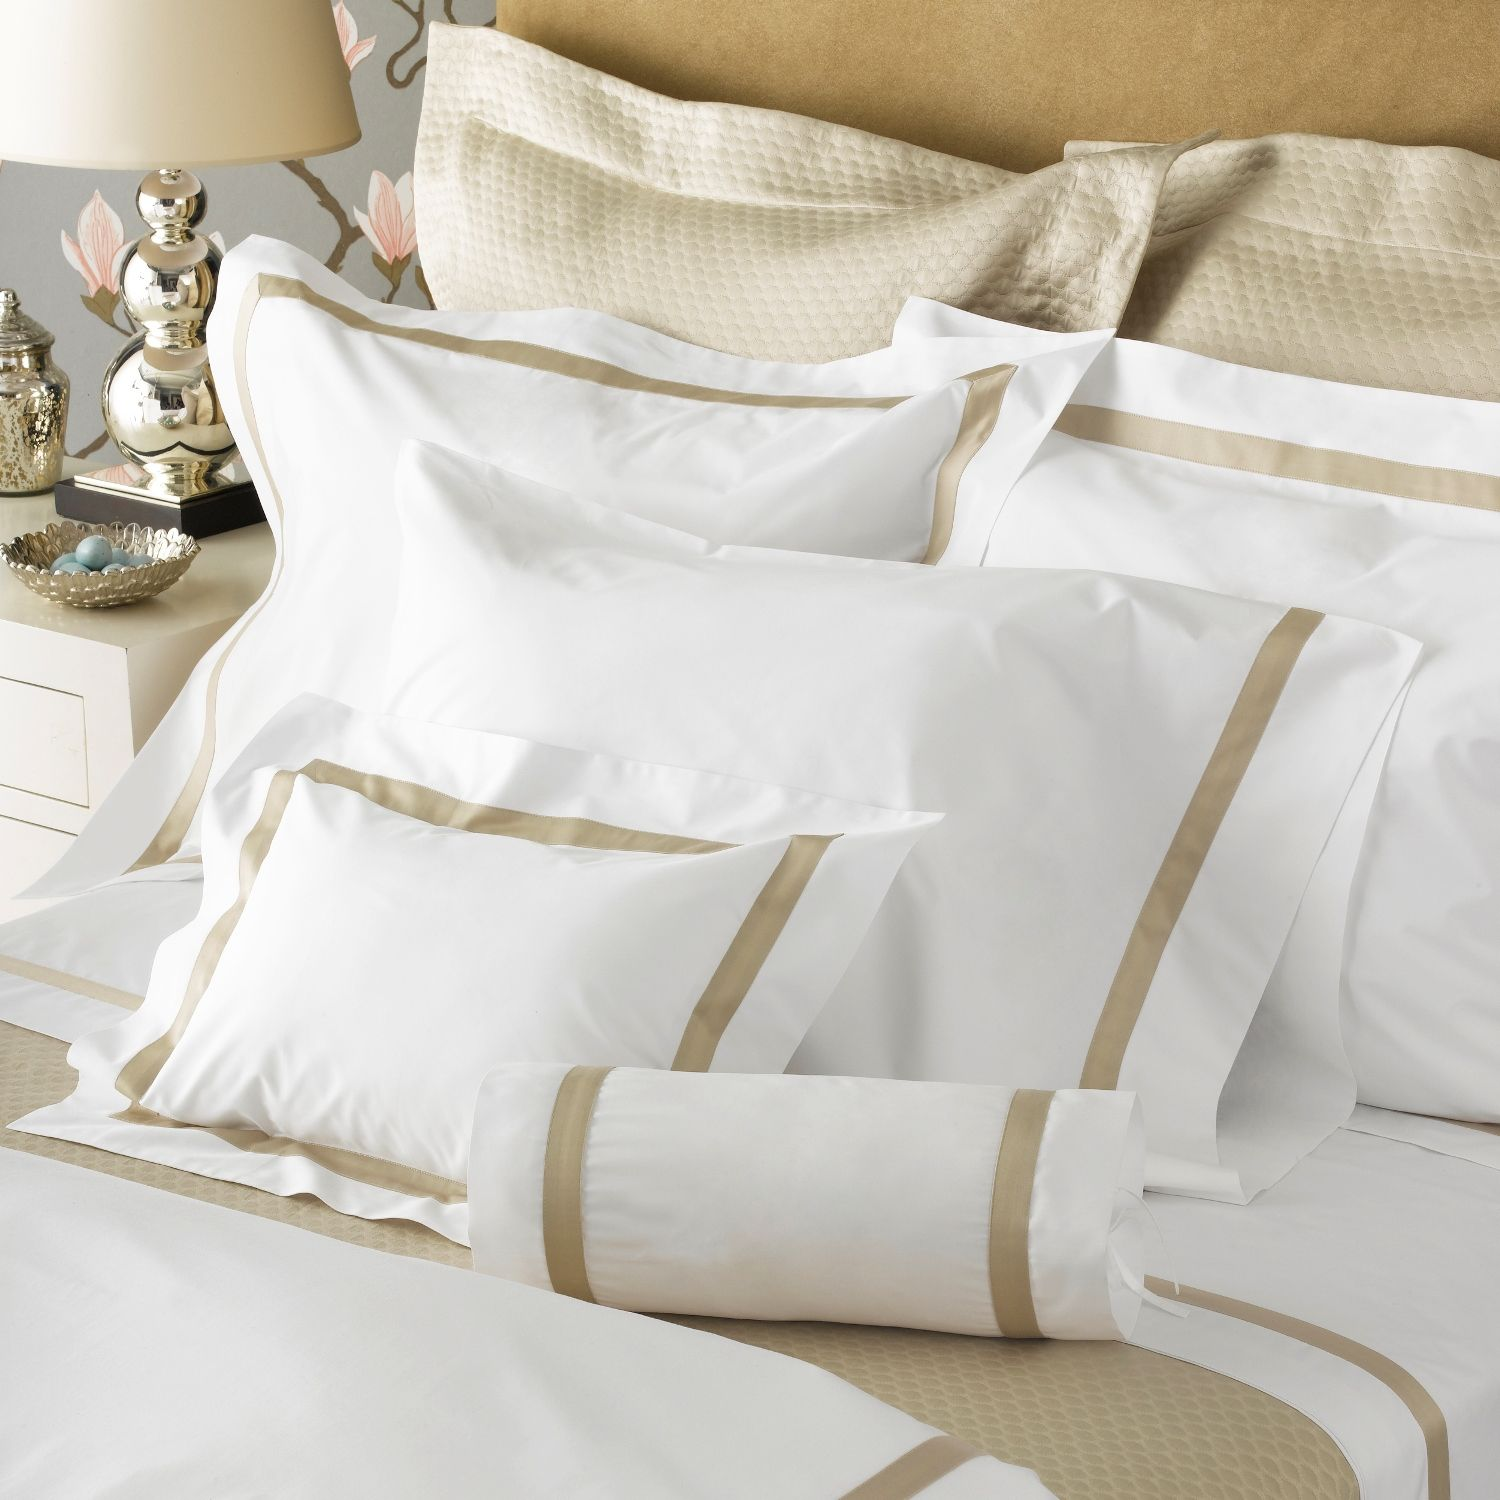 Matouk's iconic, best selling style is an elegantly modern bedroom staple—white or ivory percale sheeting lavishly woven in Italy from the finest Egyptian cotton, finished with a distinctive 1-inch trim in a variety of colors.